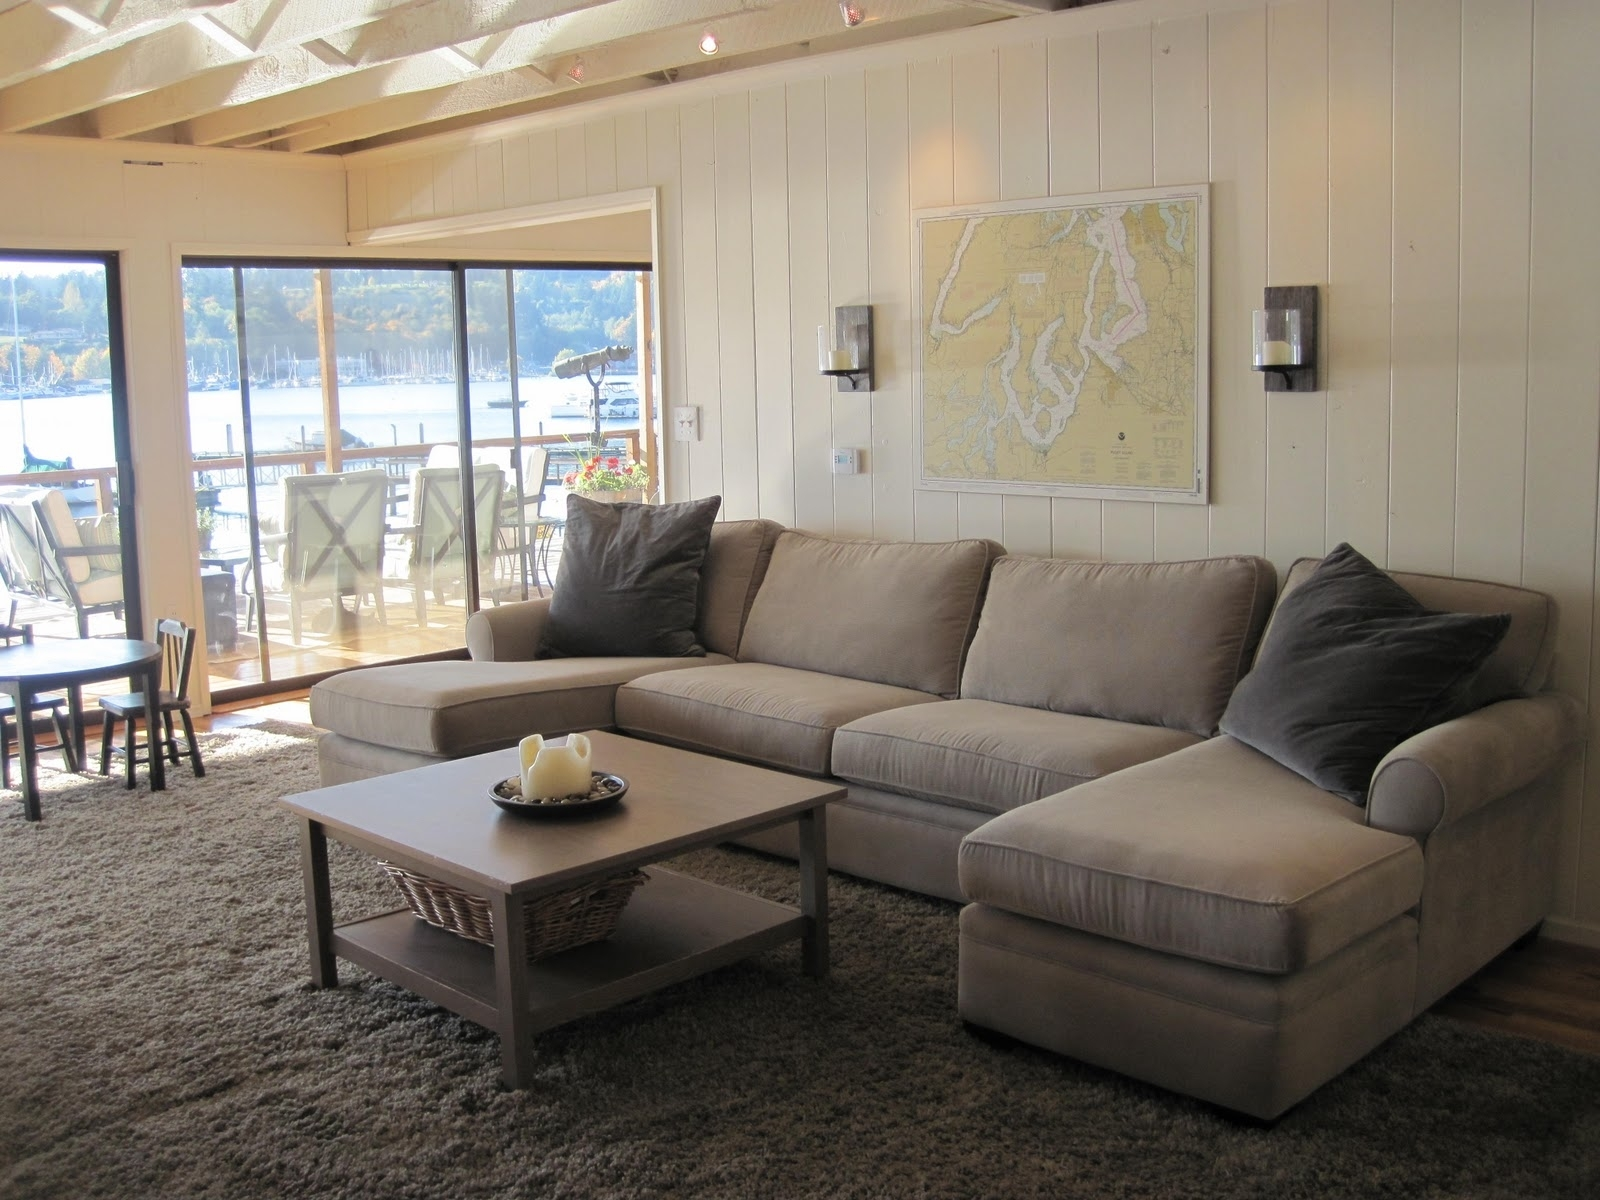 U Shaped Sectional With Chaise Design | Homesfeed Regarding Big U Shaped Sectionals (Photo 8 of 10)